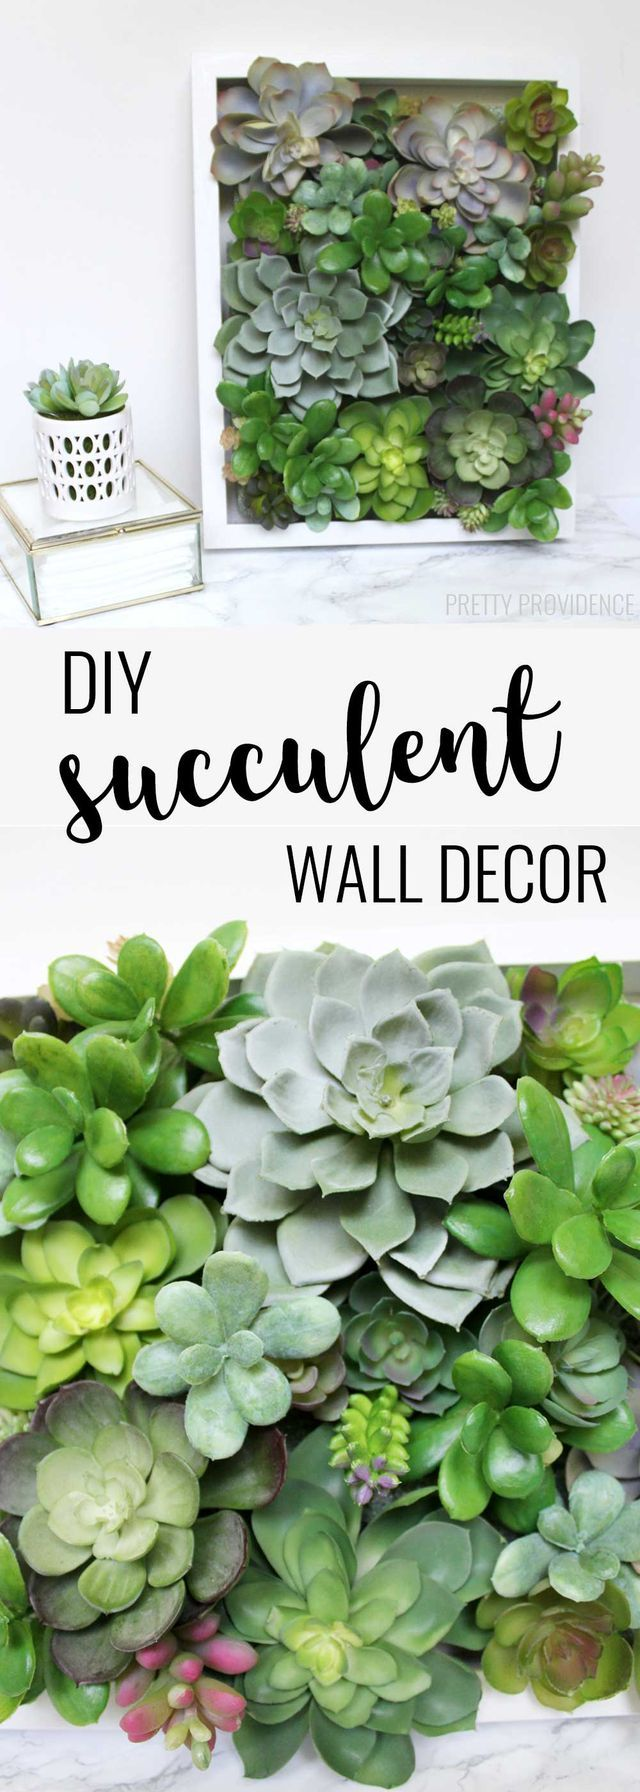 As you may know, I LOVE decorating with fake succulents. I'm working on getting them onto every surface and every wall of my home! Haha. I have some real ones too, but for the most part I like my plan